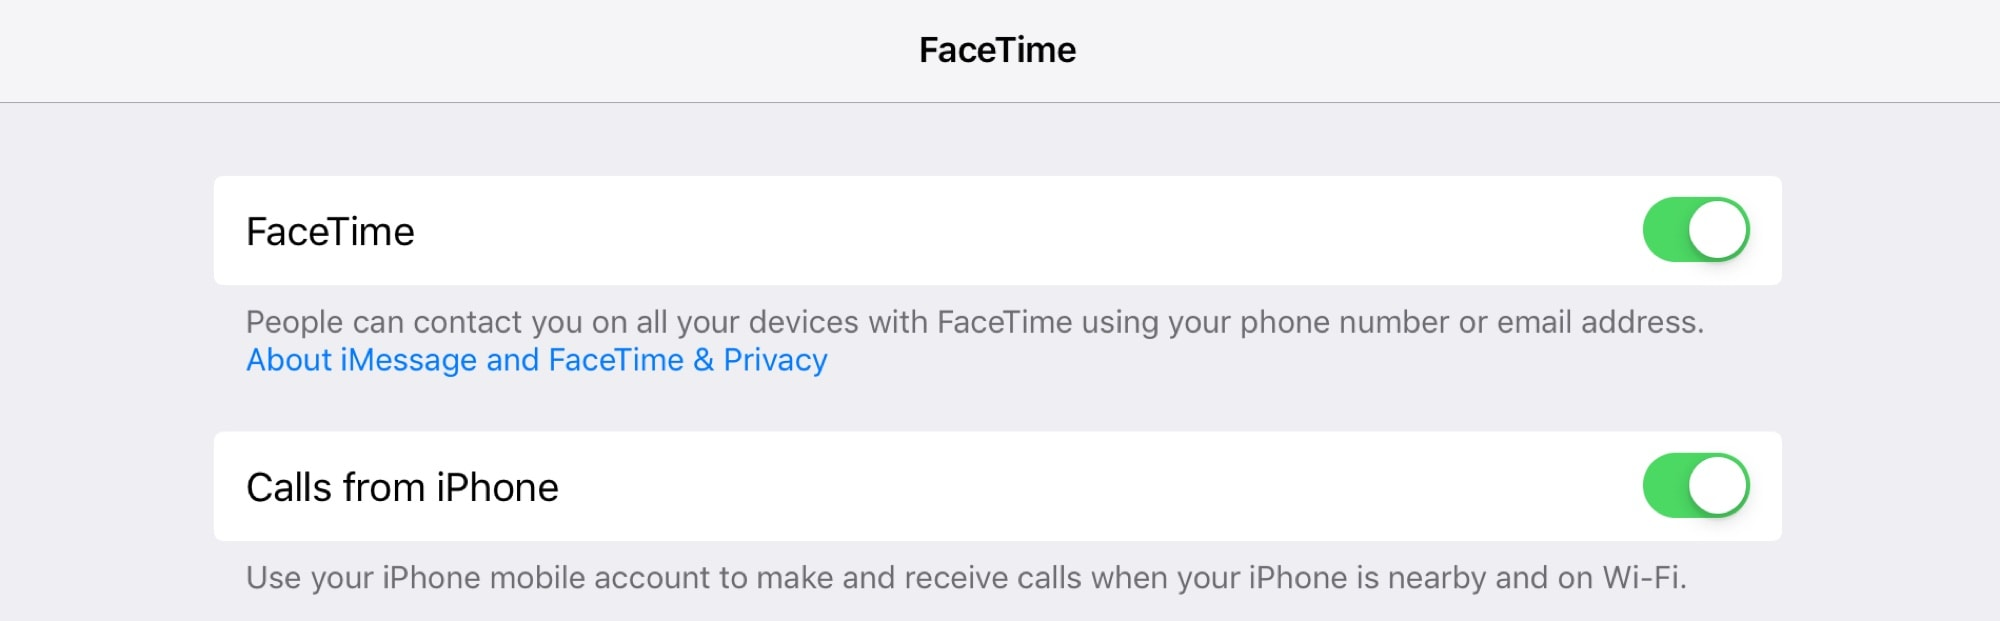 Switch on Calls from iPhone to complete the setup and make iPad phone calls